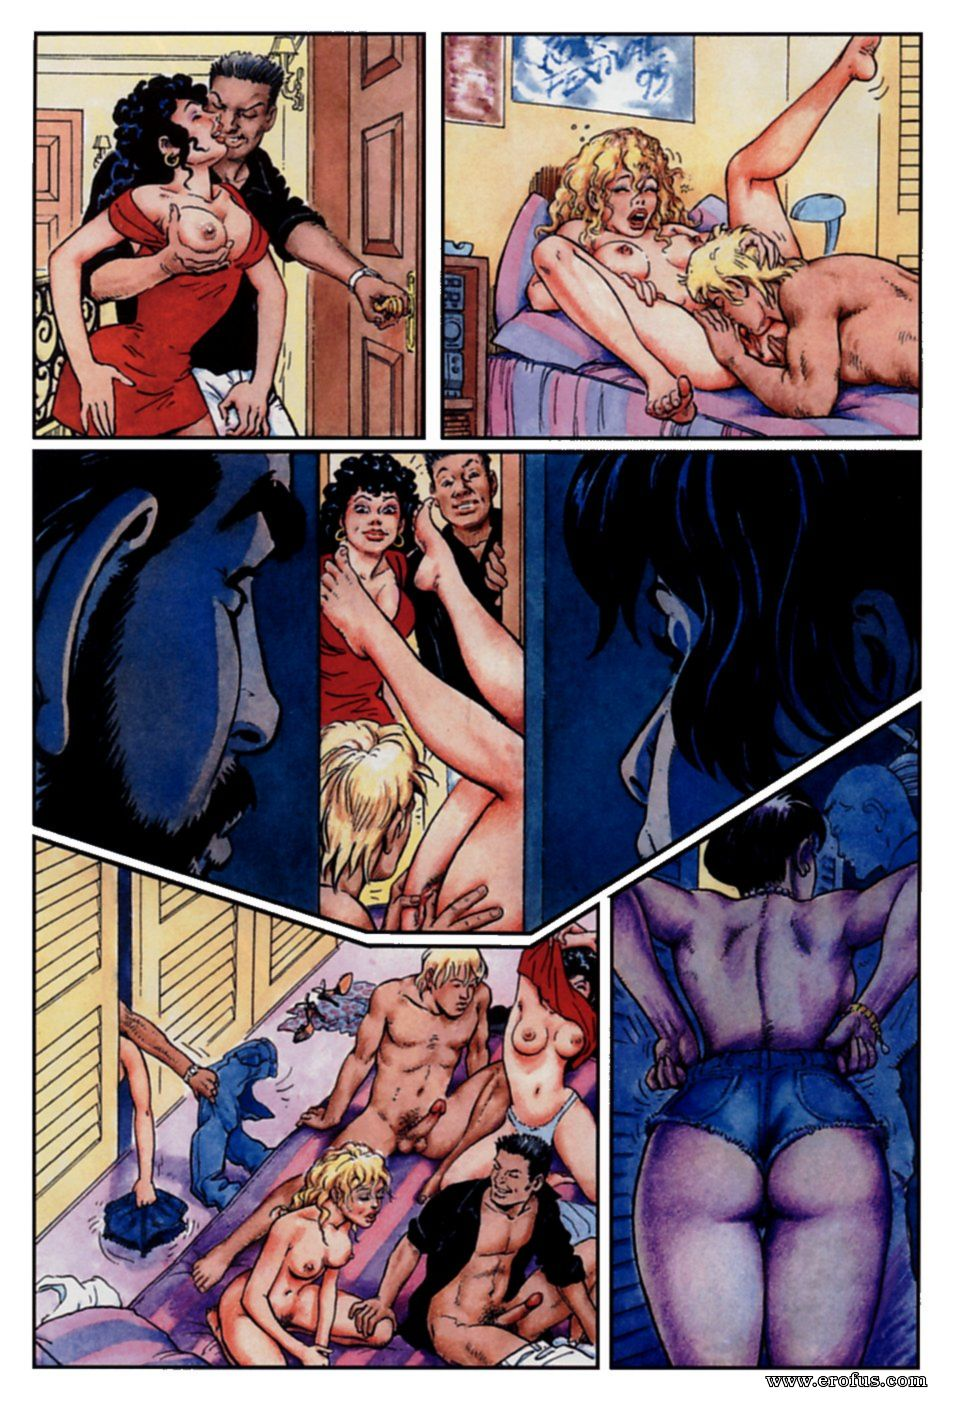 american-erotic-comic-scan-couples-therapy-movie